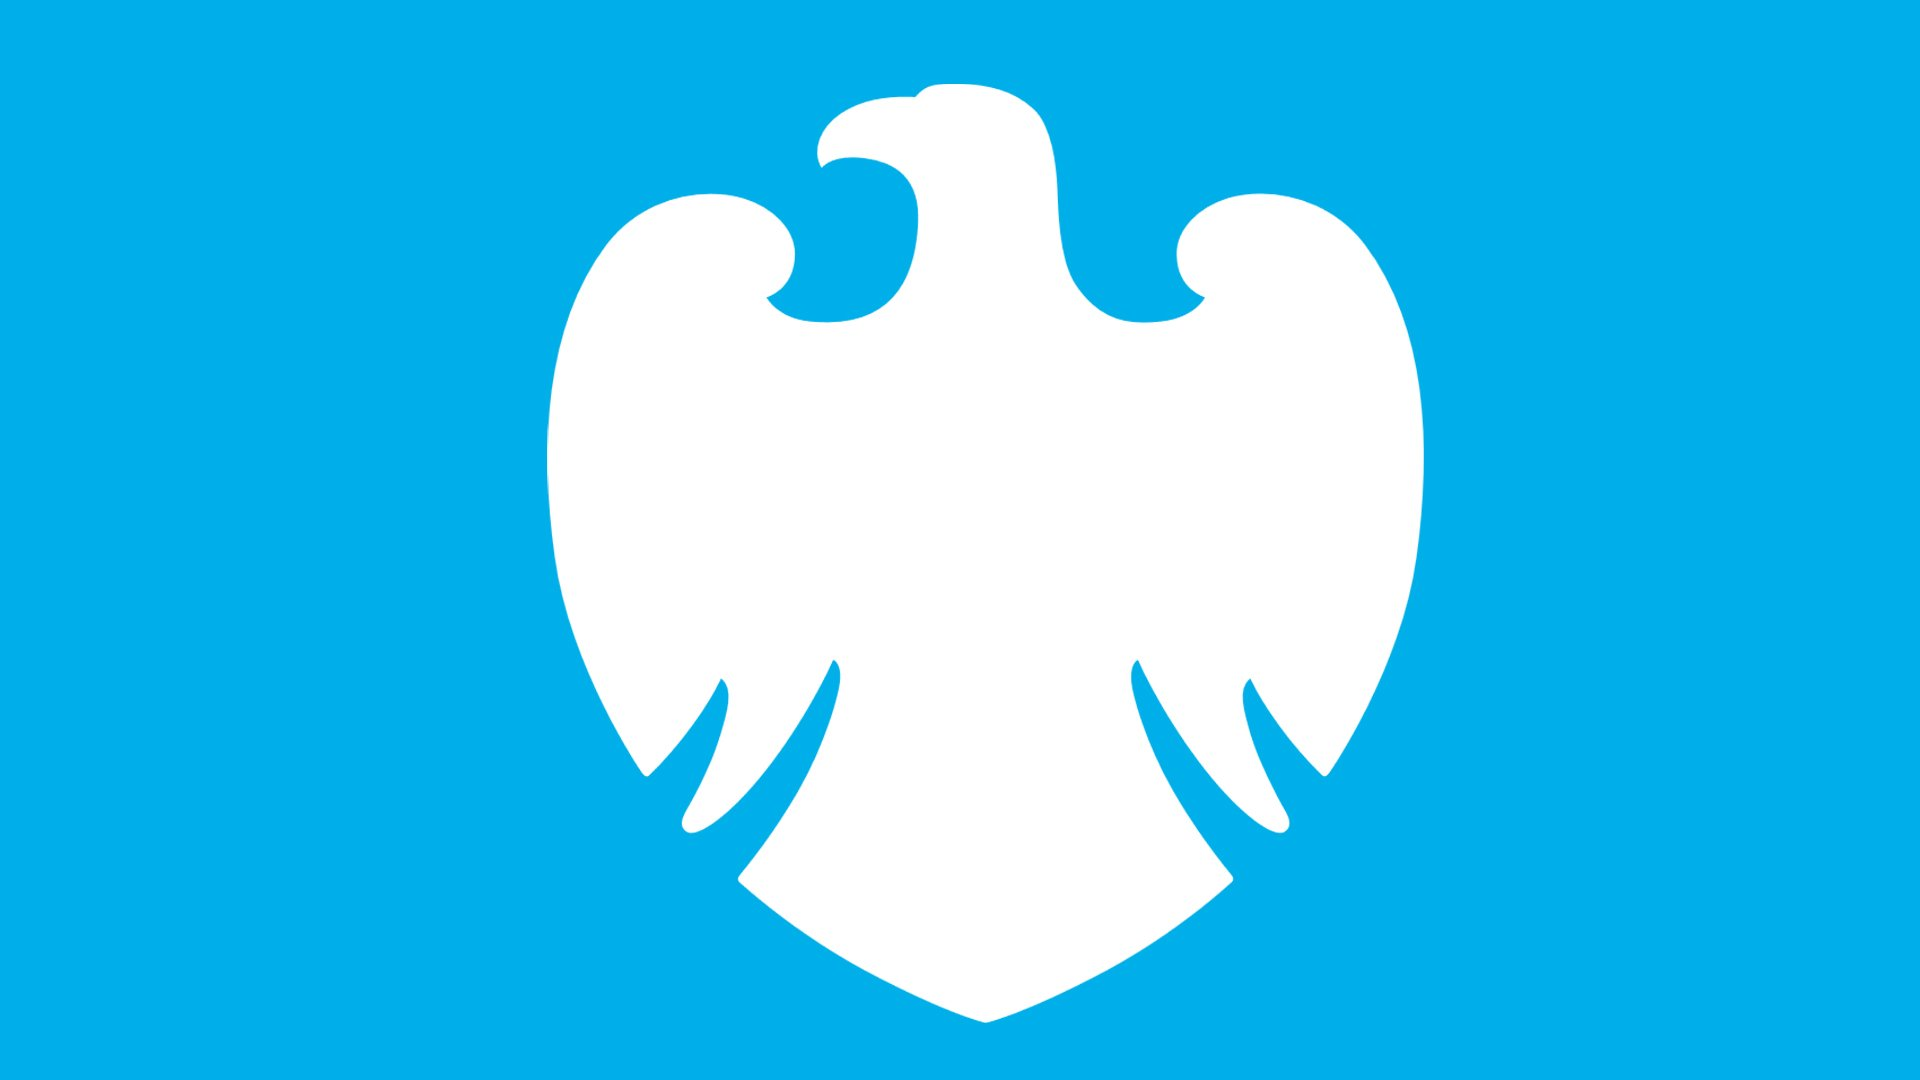 Barclays Logo, Barclays Symbol Meaning, History and Evolution